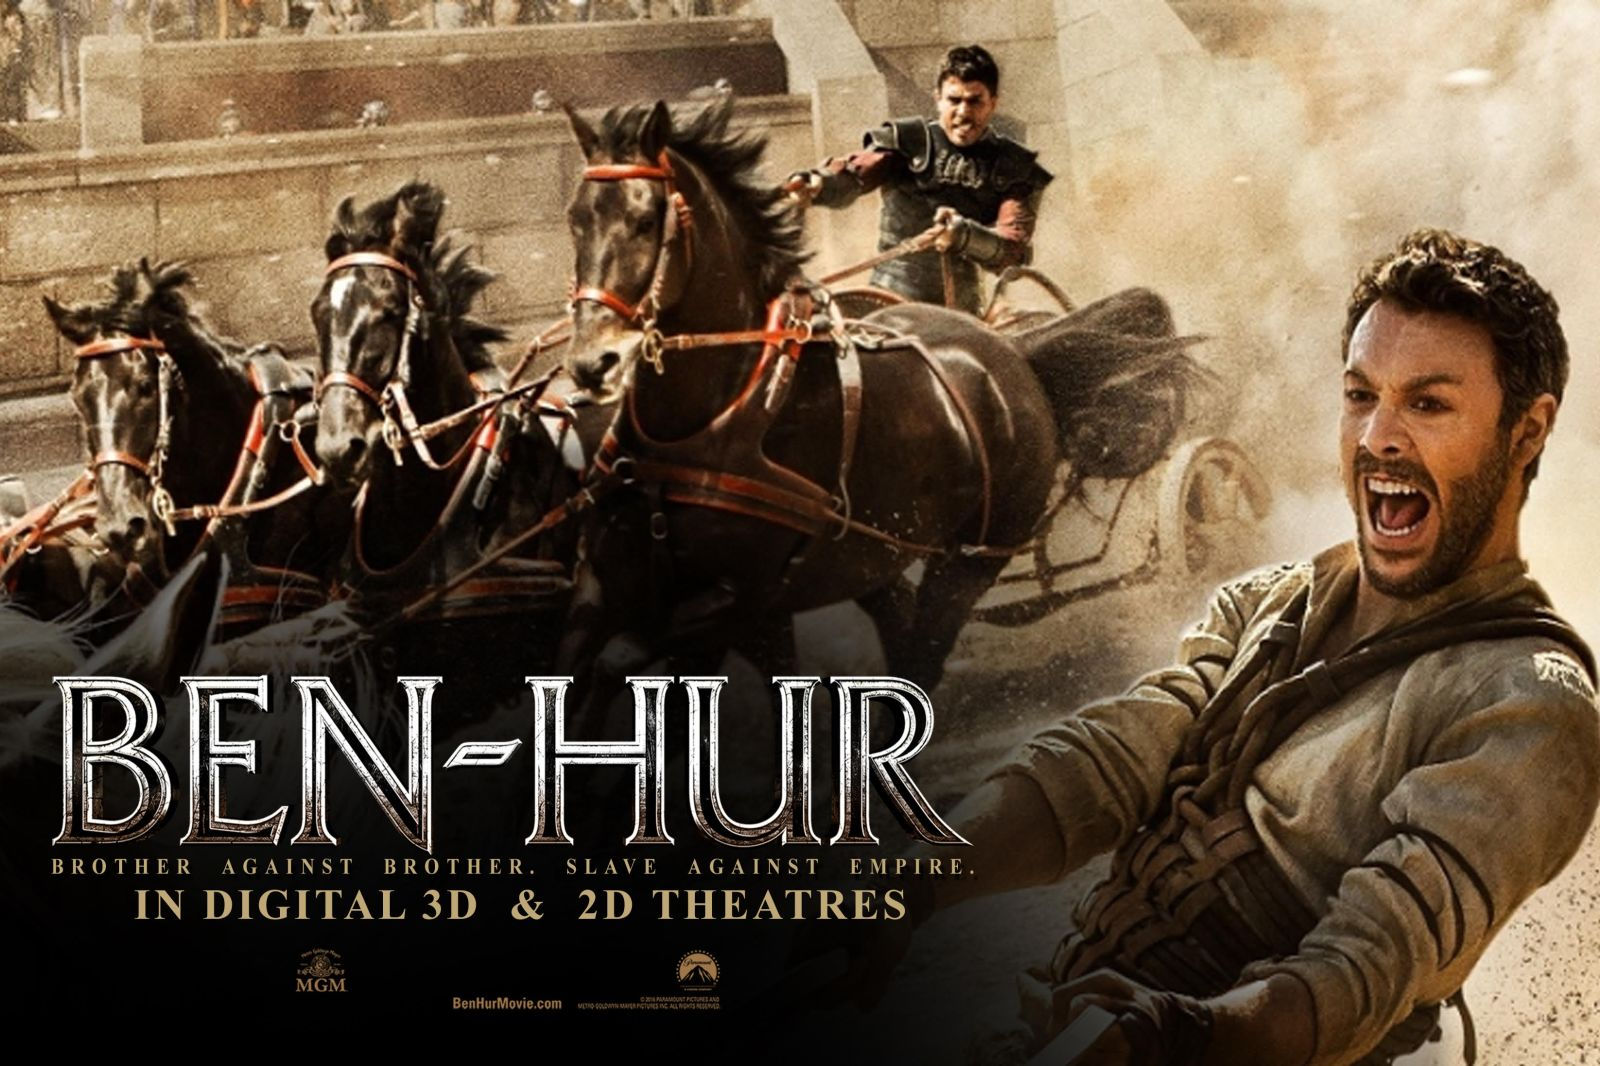 Ben Hur 2016 Review The Anomalous Host